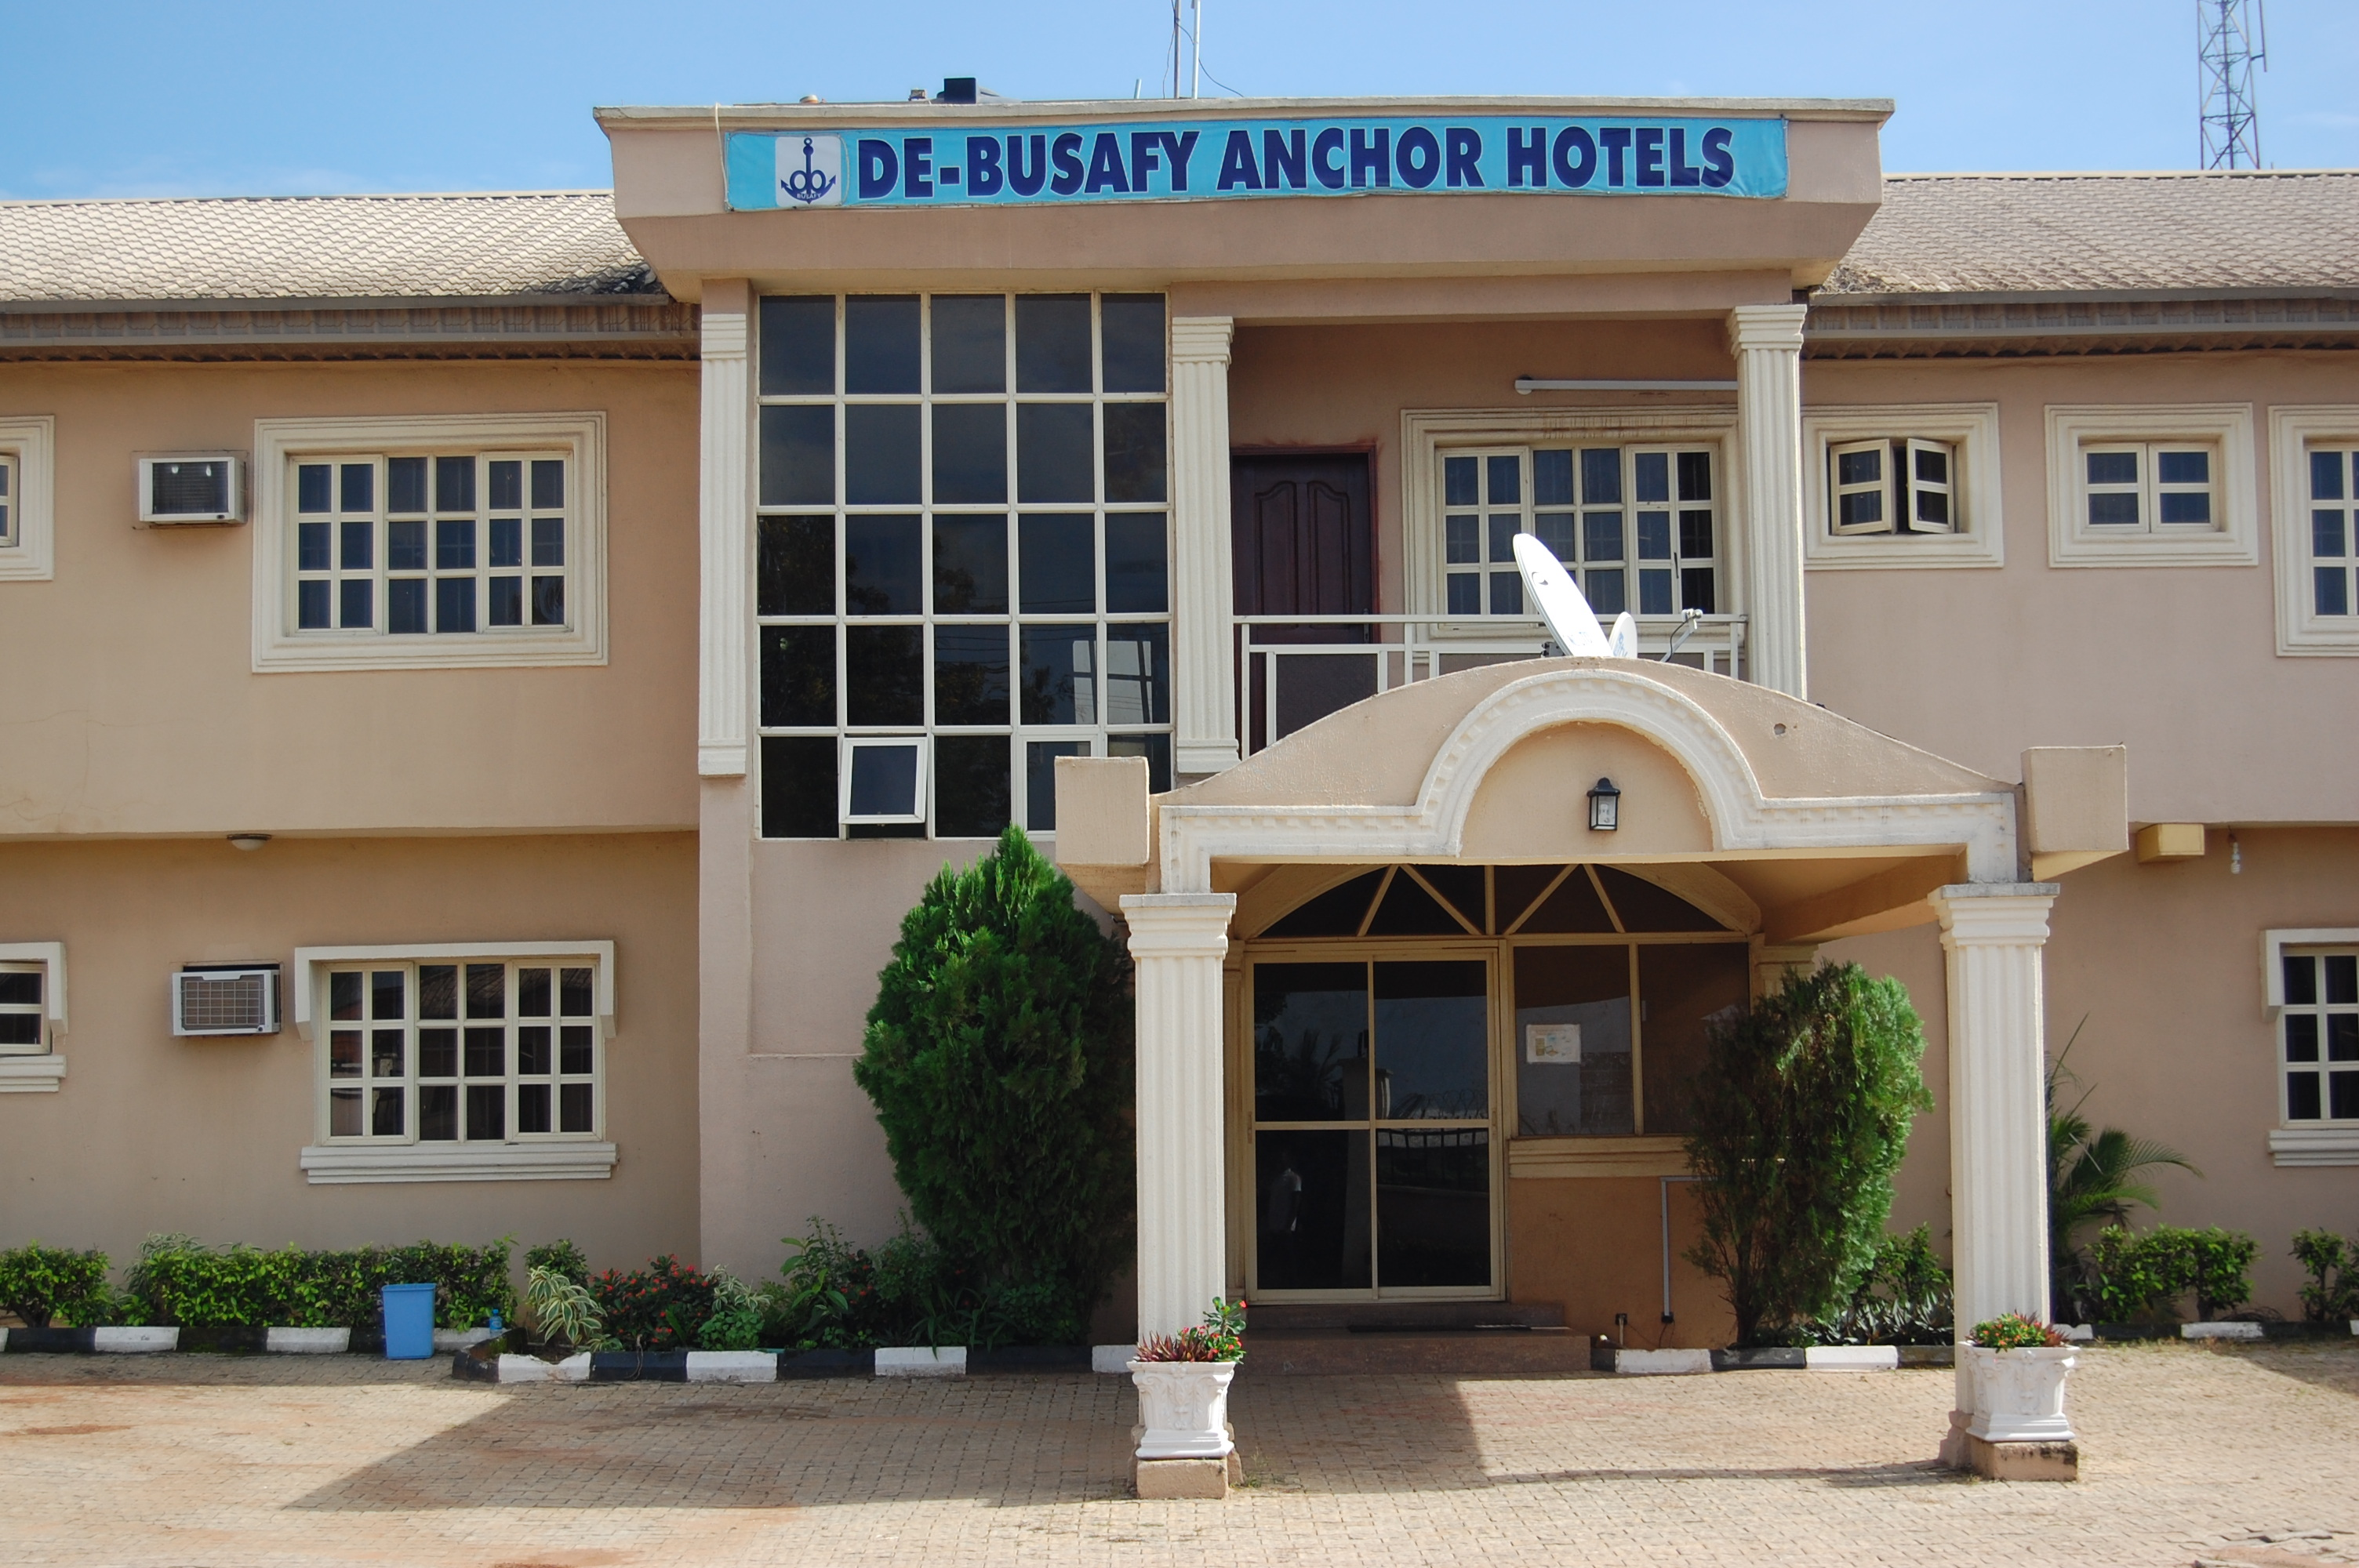 De-Busafy Anchor Hotels – Meeting Rooms